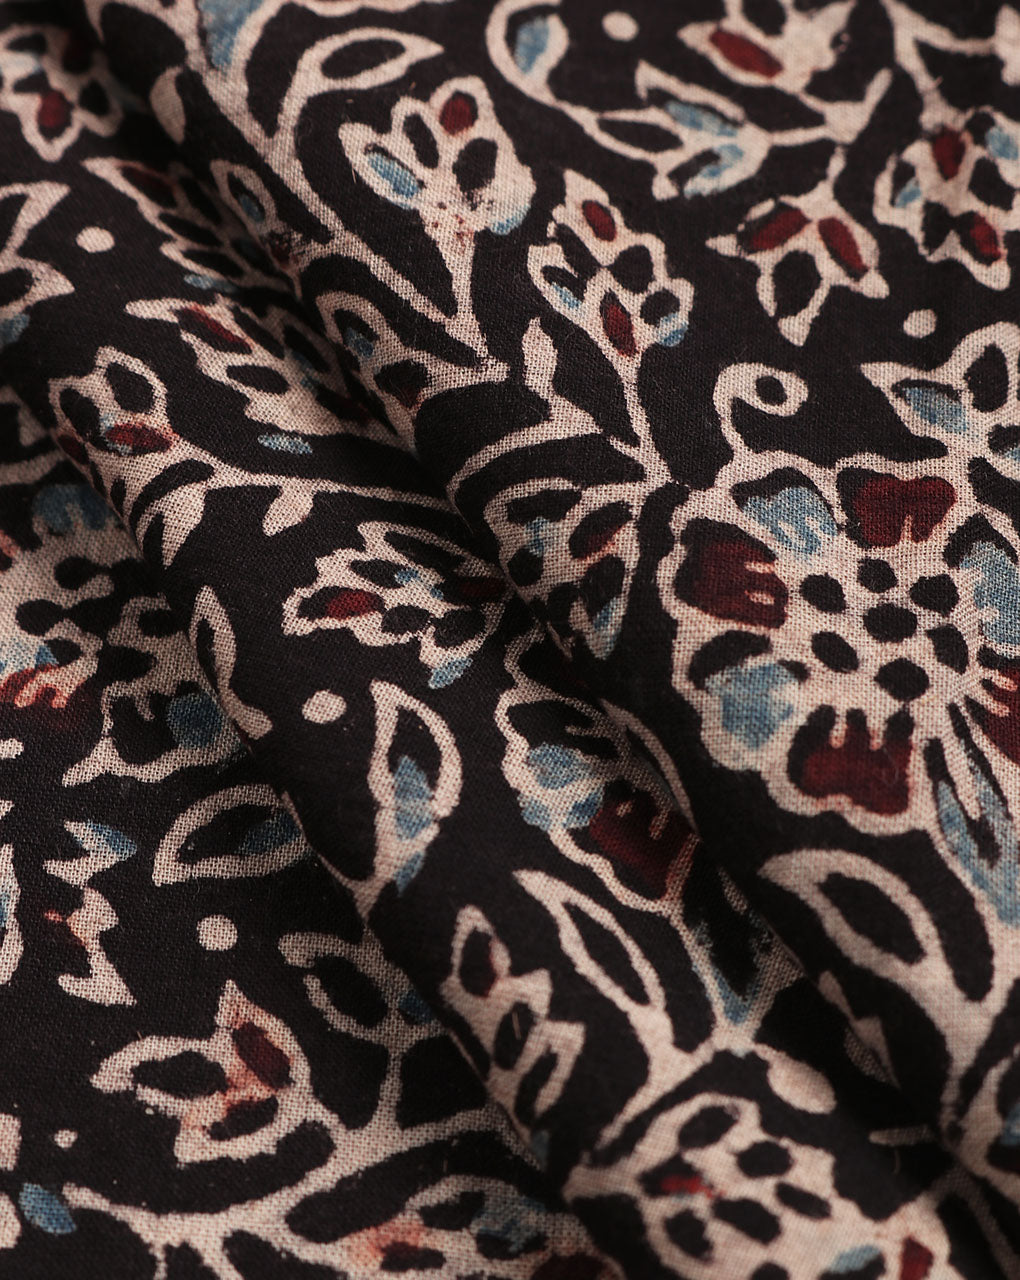 Black & Blue Ajrak Geometric Hand Block Natural Dye Cotton Fabric - Fabriclore.com